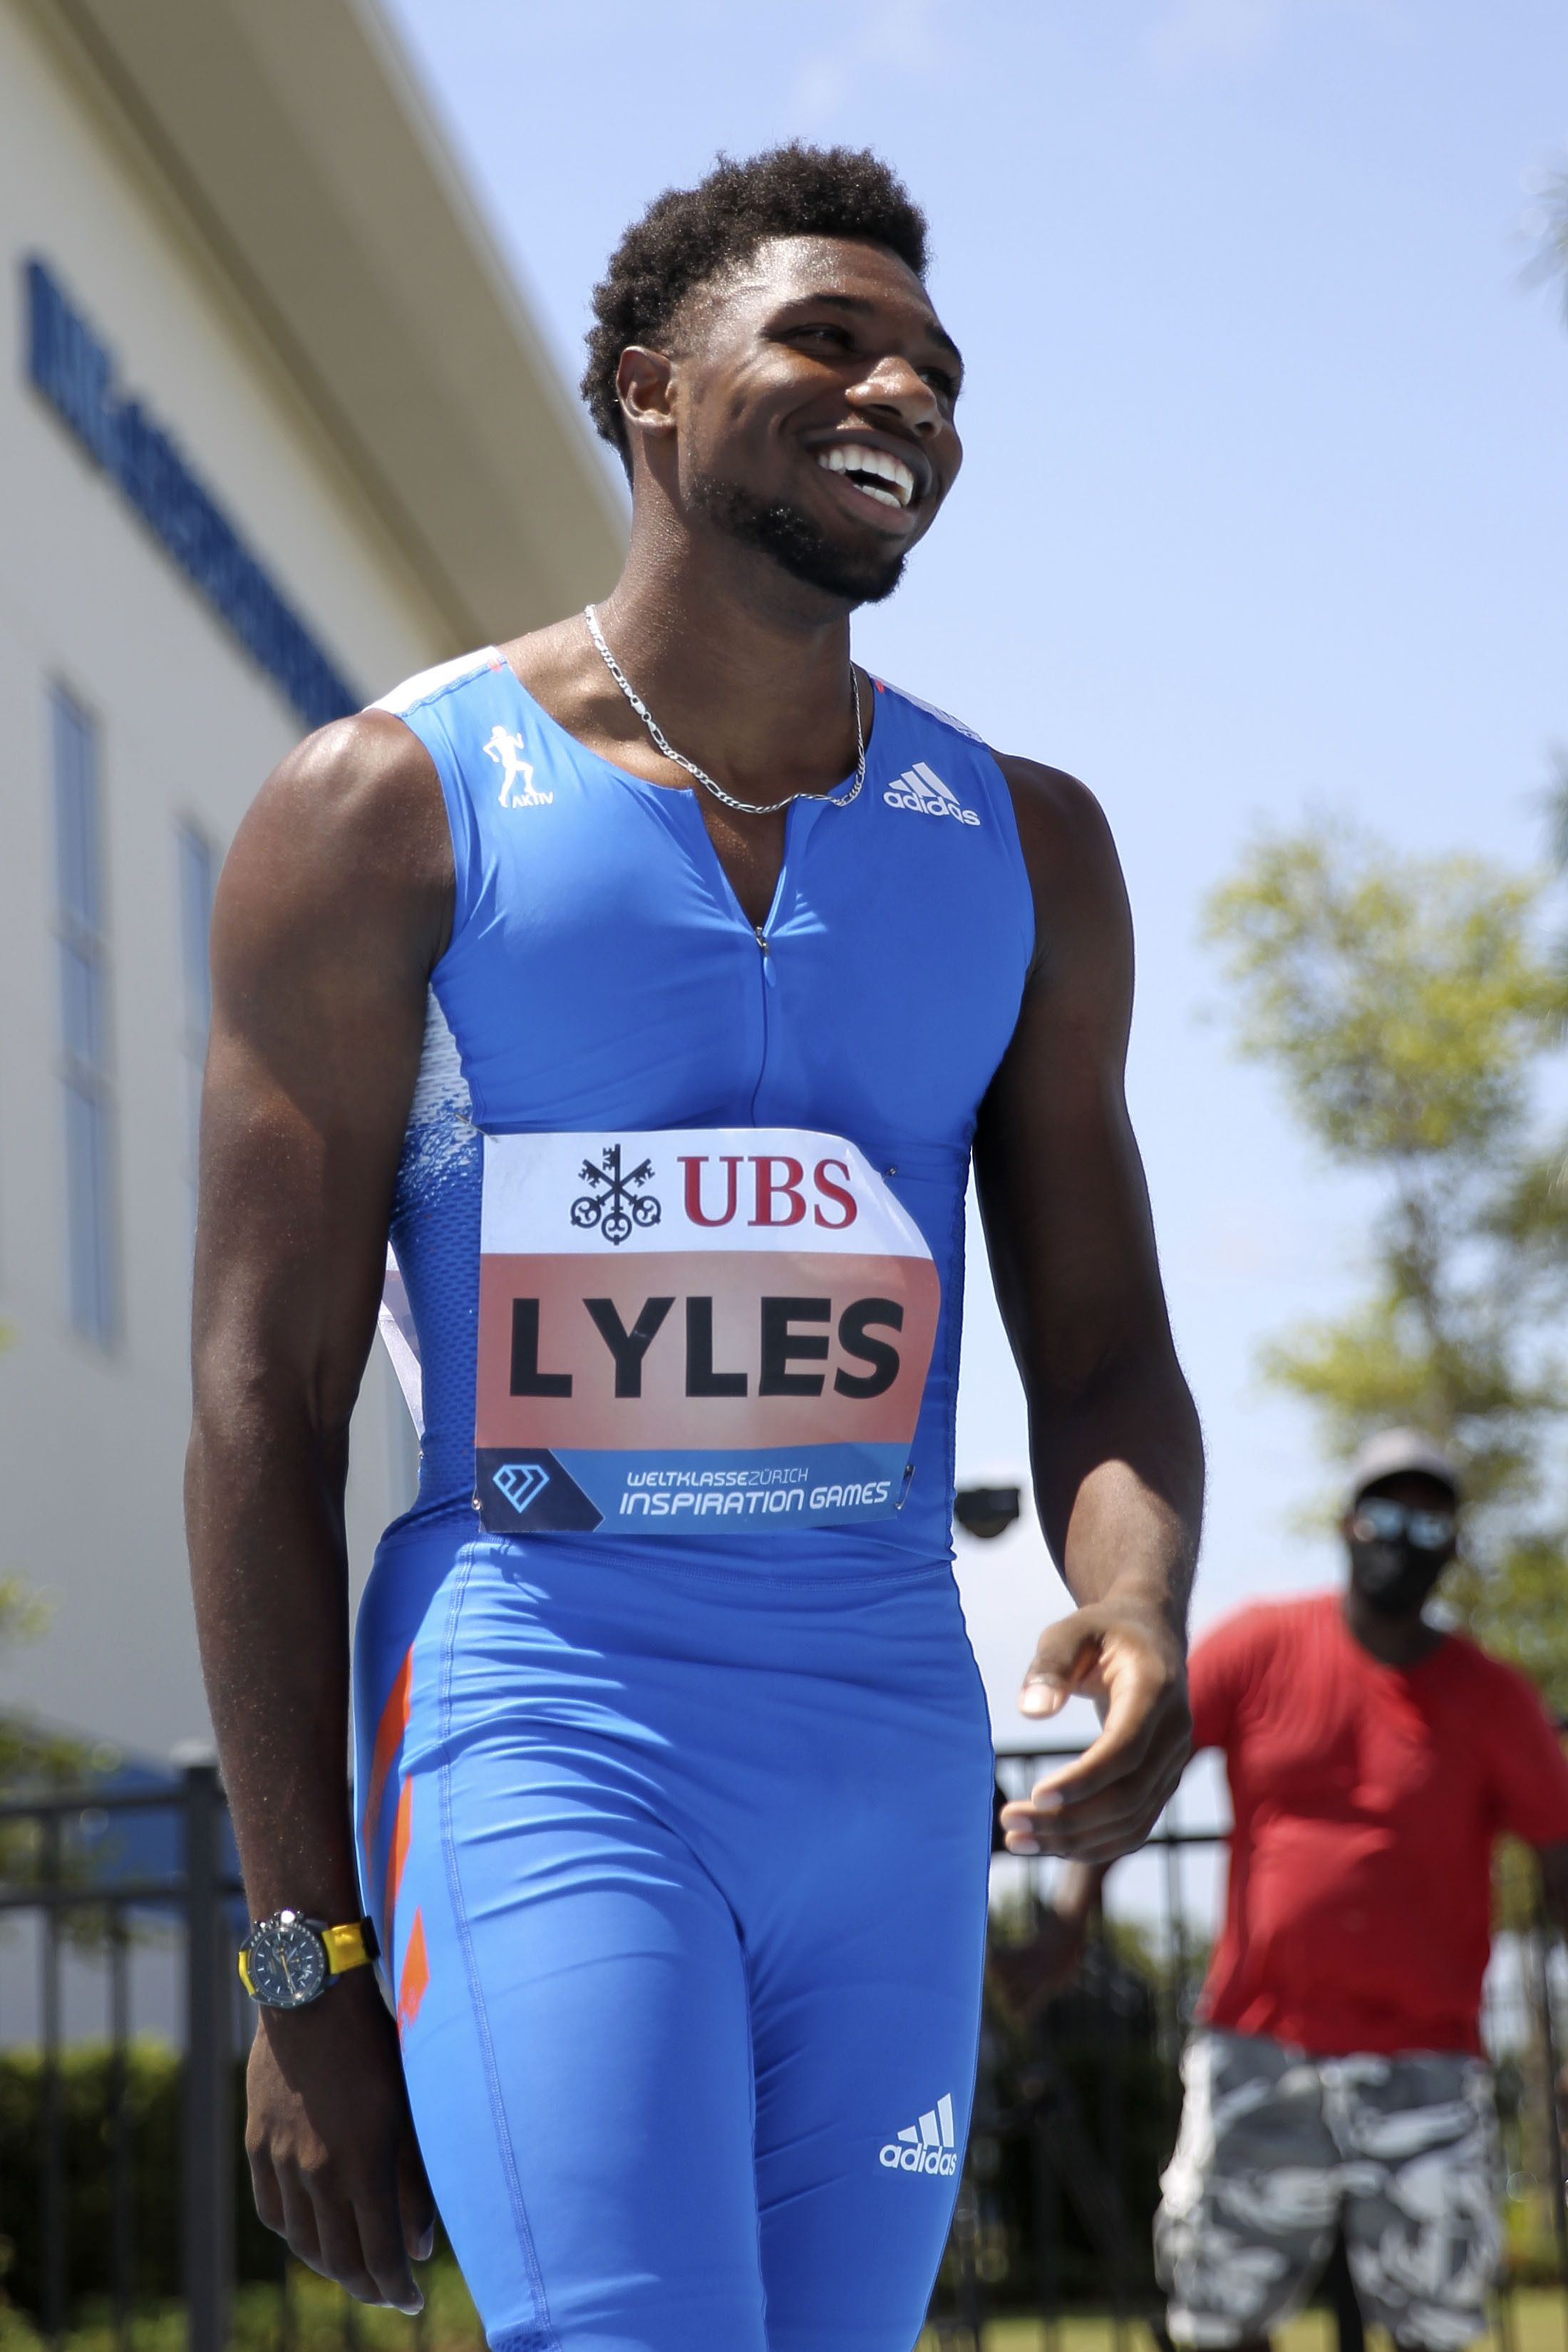 Noah Lyles's Stunning 200M at the Inspiration Games ... Was Actually 15 Meters Short